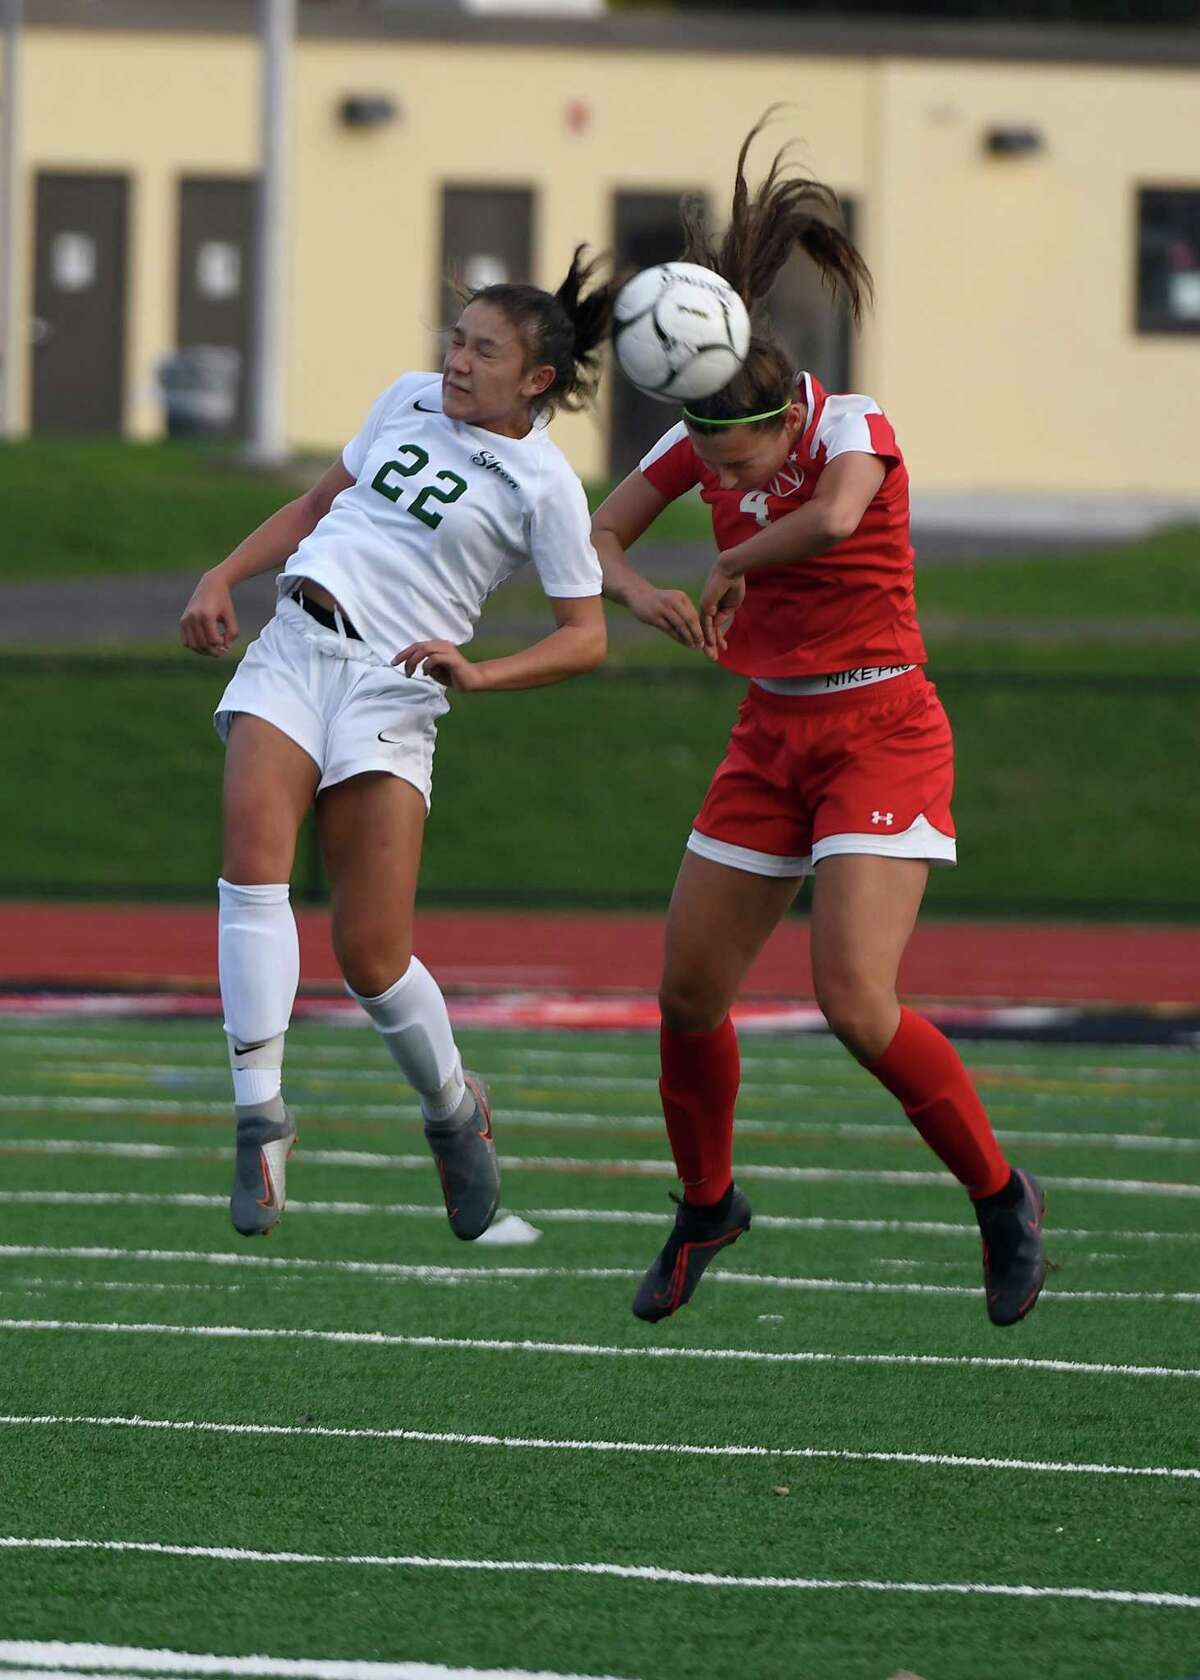 Niskayuna's Olivia Maltbie and Shenendehowa's Georgia Greene attempt to head the ball during their Class AA semifinal match on Wednesday, Oct. 30, 2019, in Mechanicville, N.Y. (Jenn March, Special to the Times Union)